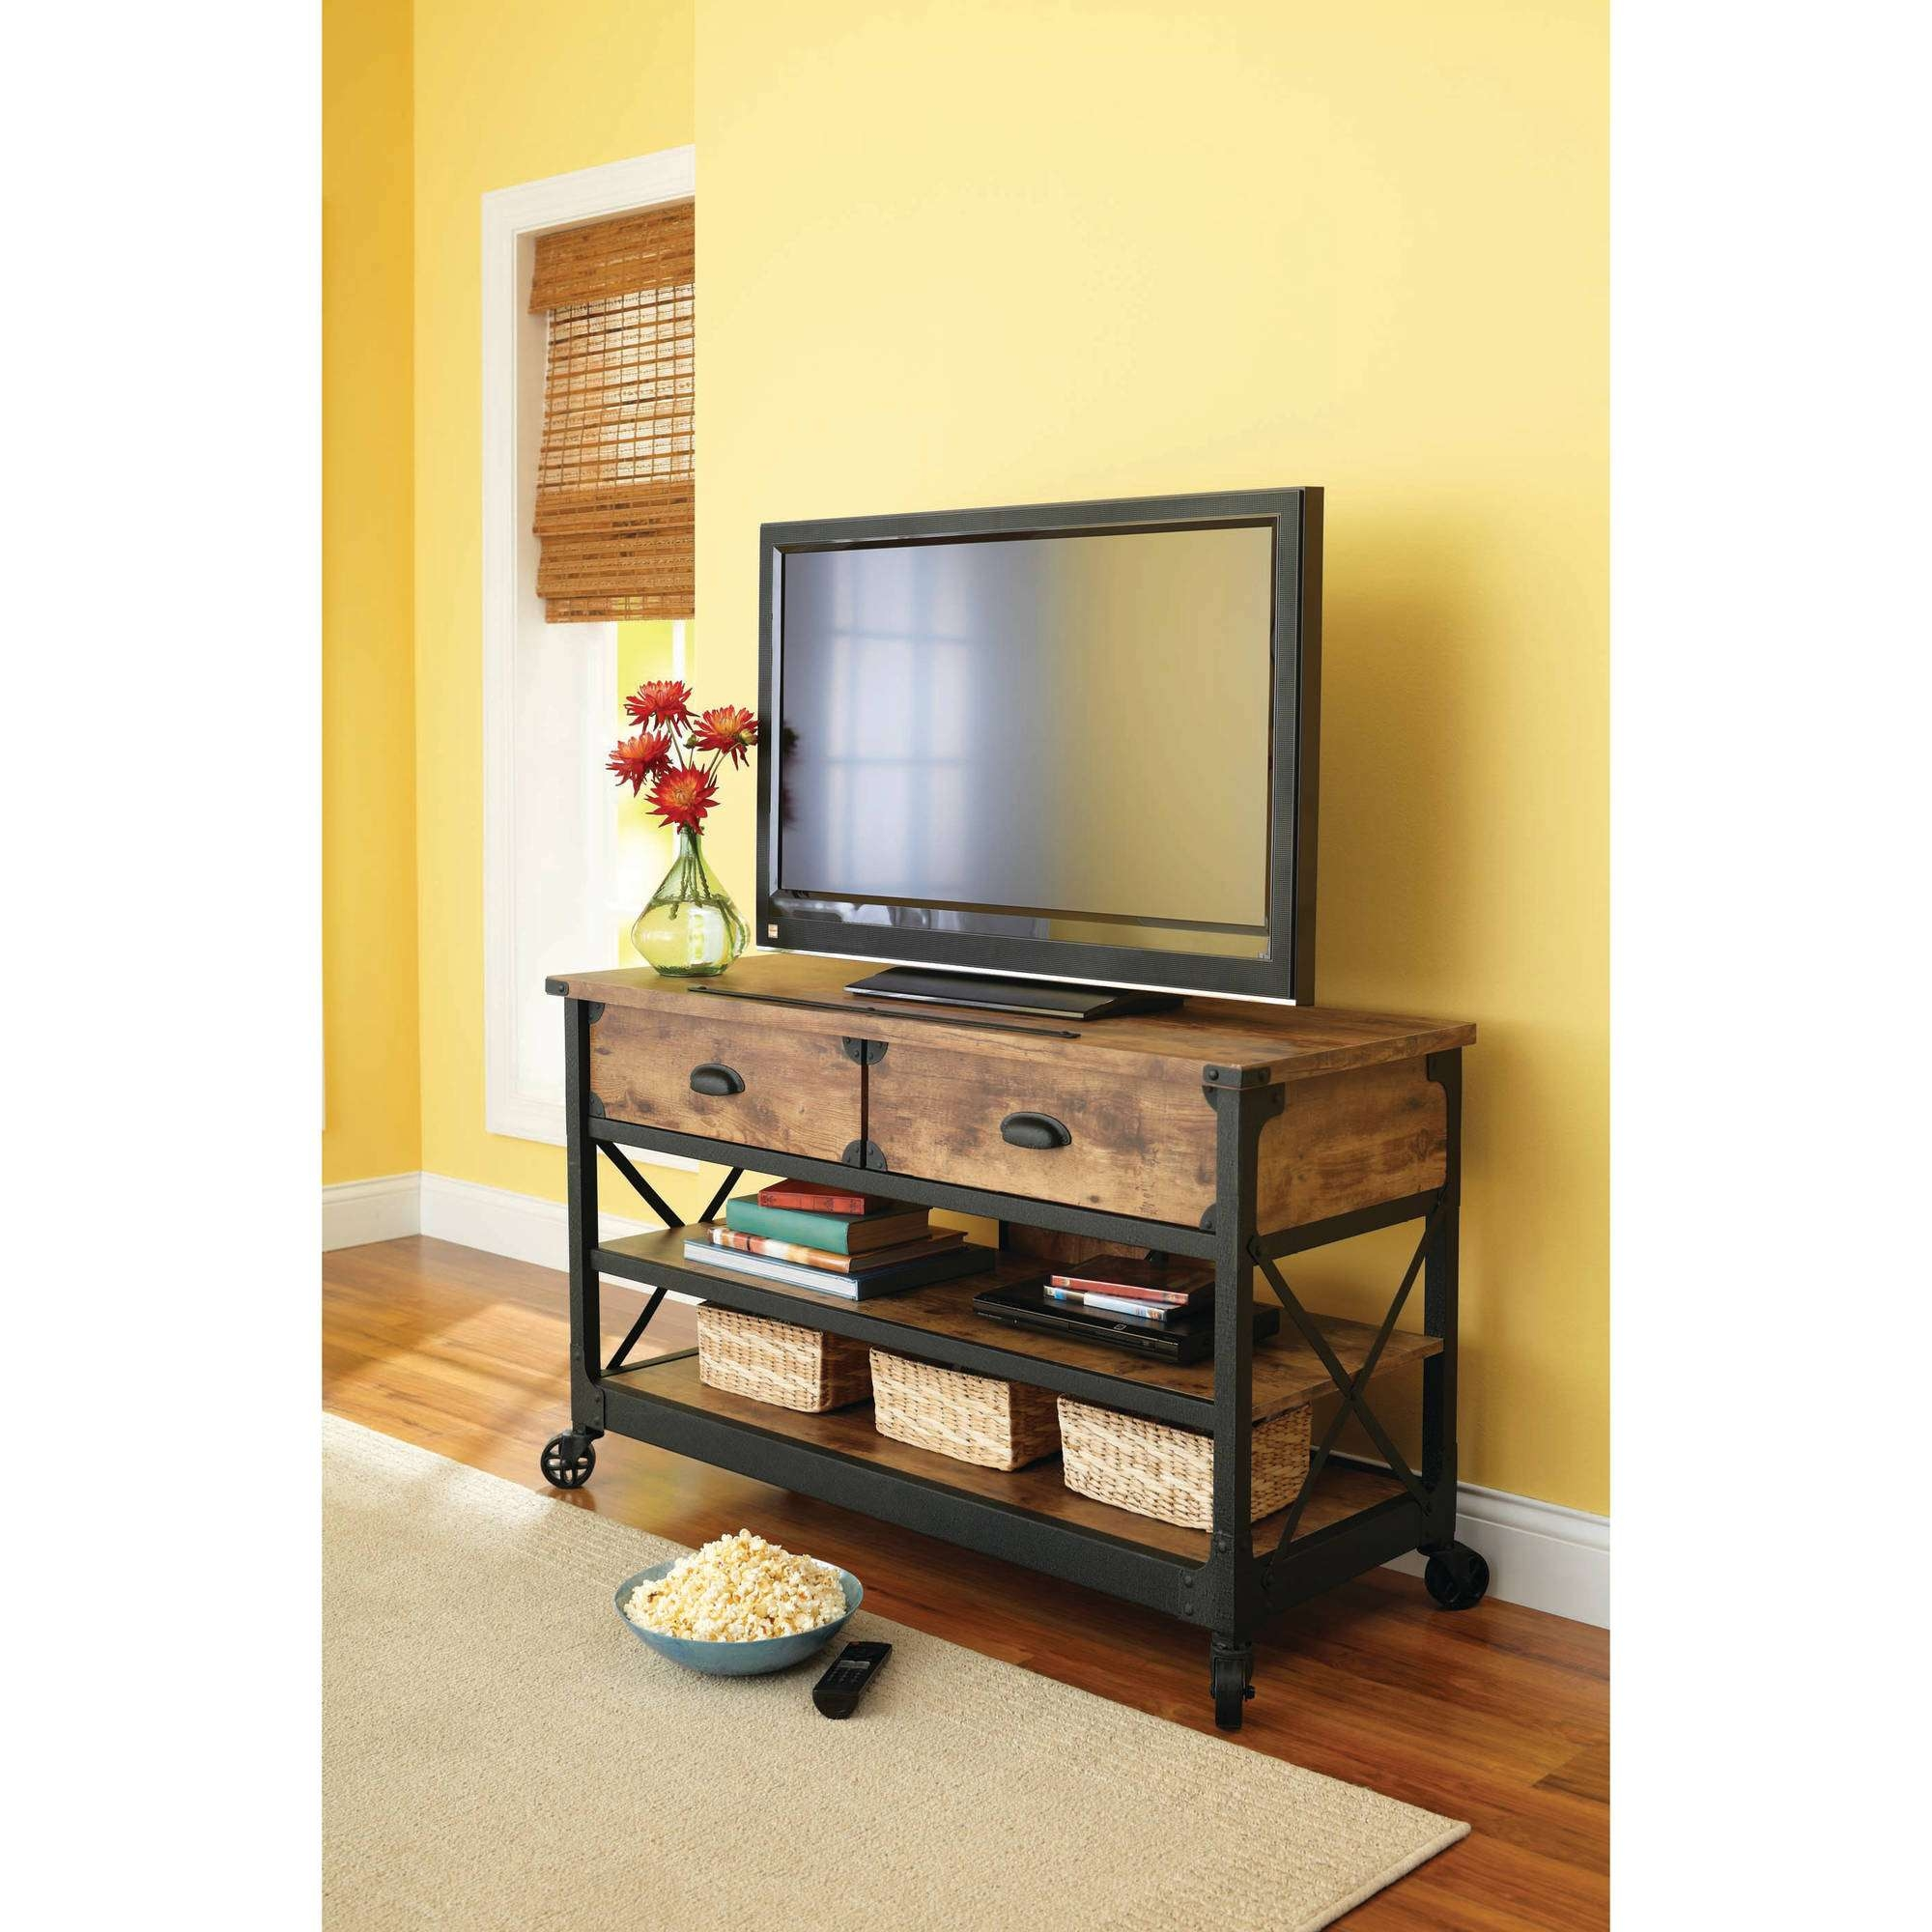 Better Homes And Gardens Rustic Country Living Room Set – Walmart Within Rustic Looking Tv Stands (View 3 of 20)